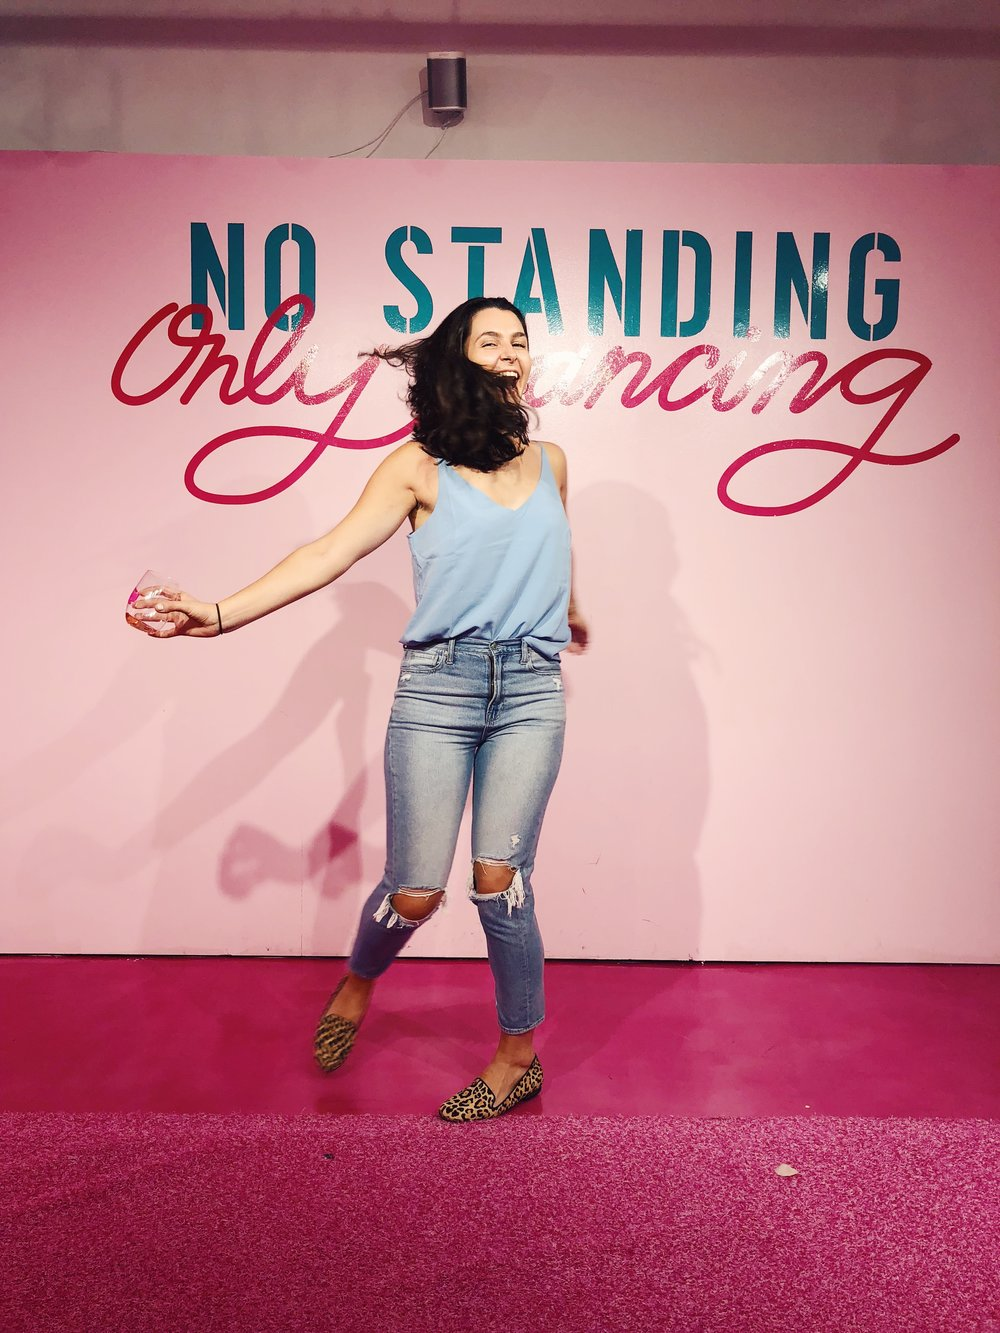 NO STANDING / Only Dancing